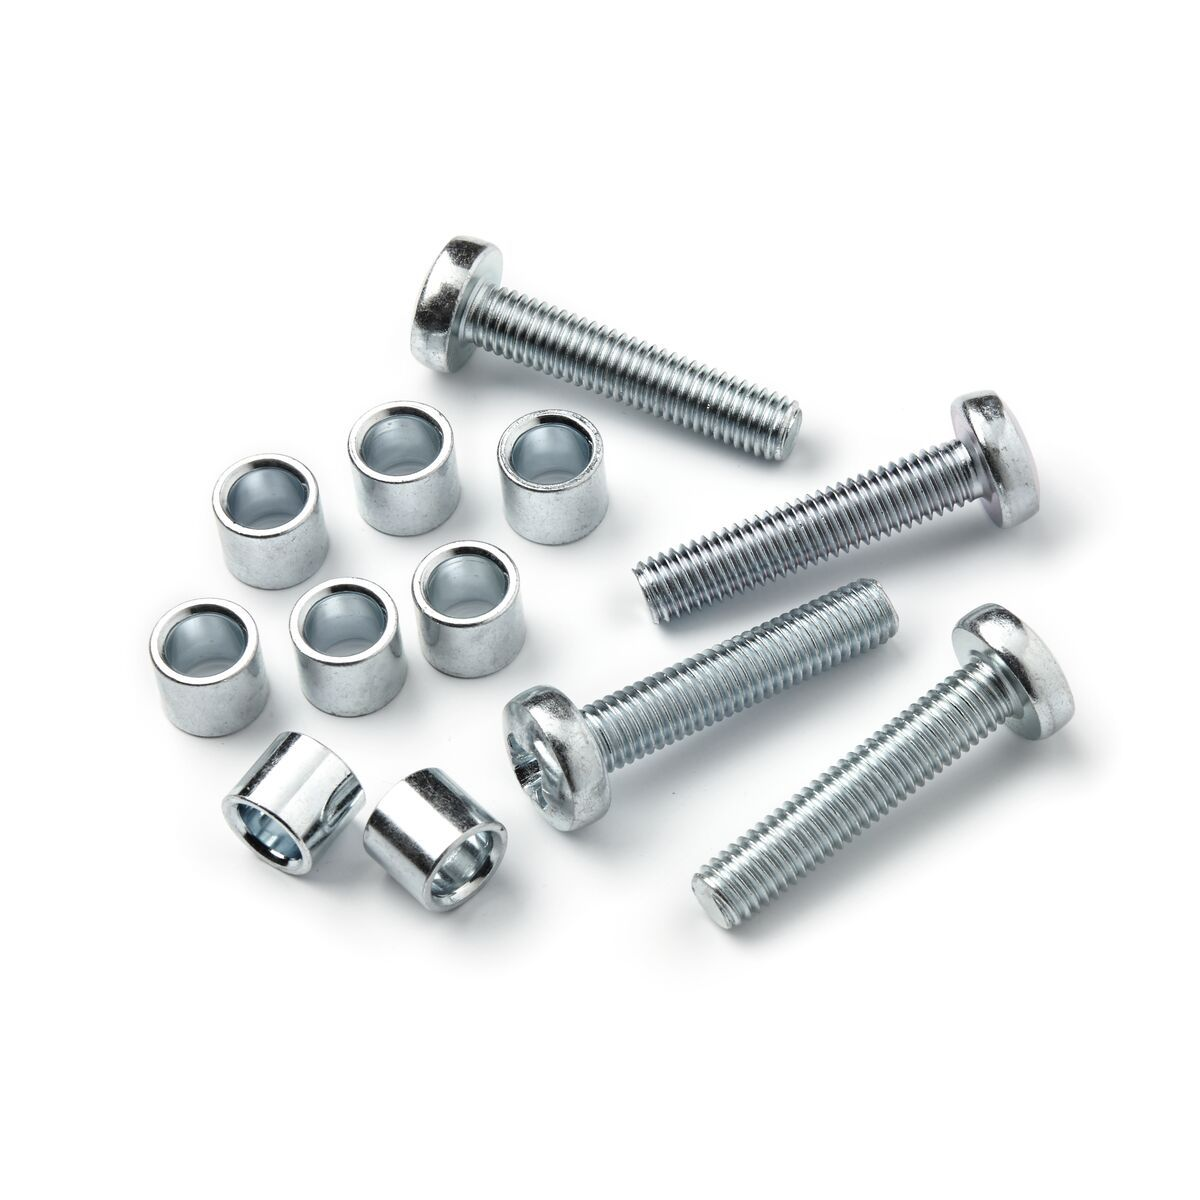 Vogel's Service Kit - Spacers (20 mm), M8 bolts (40 mm) - Detail